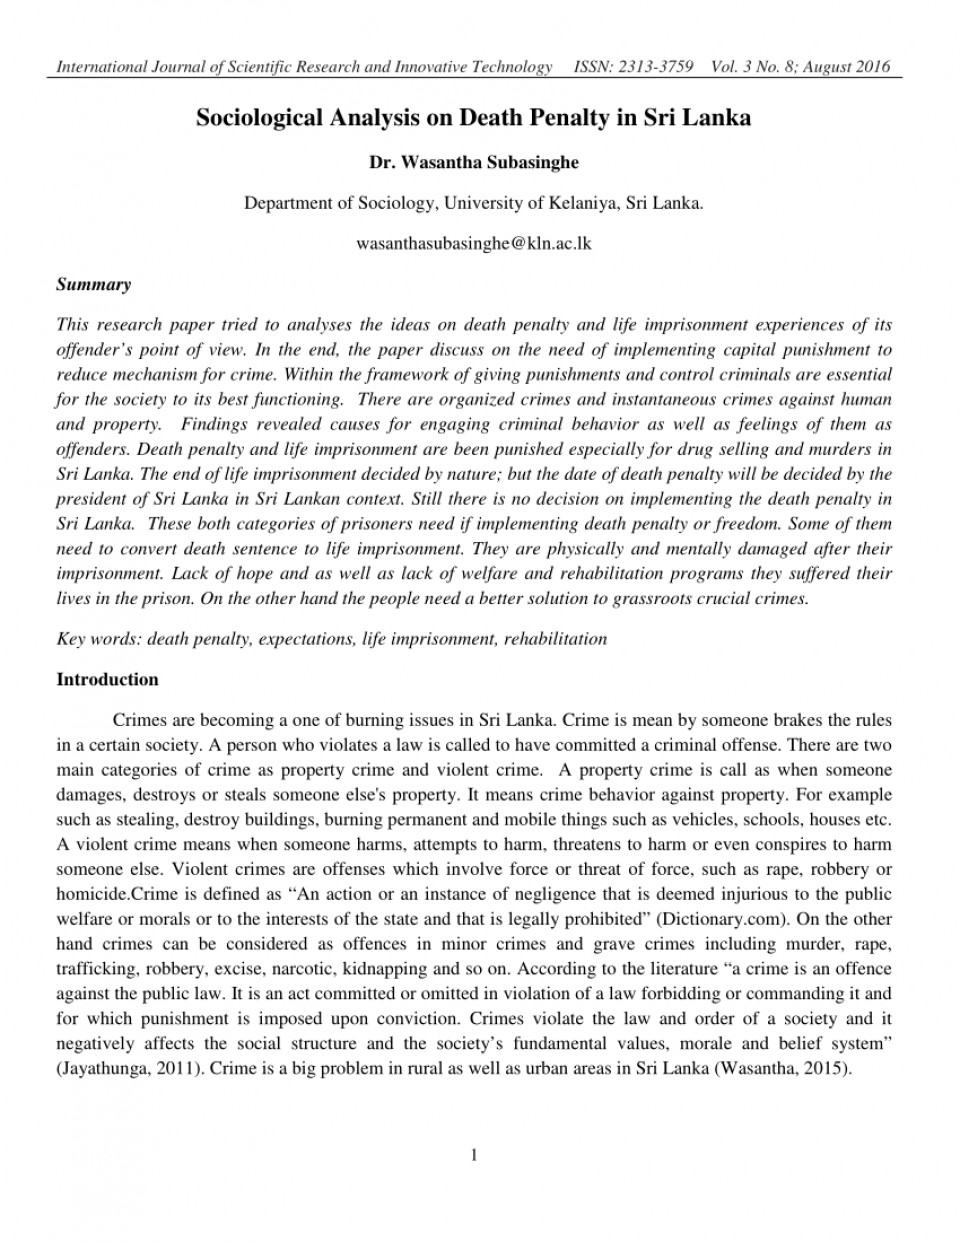 008 Research Paper Death Penalty Abstract Remarkable 960